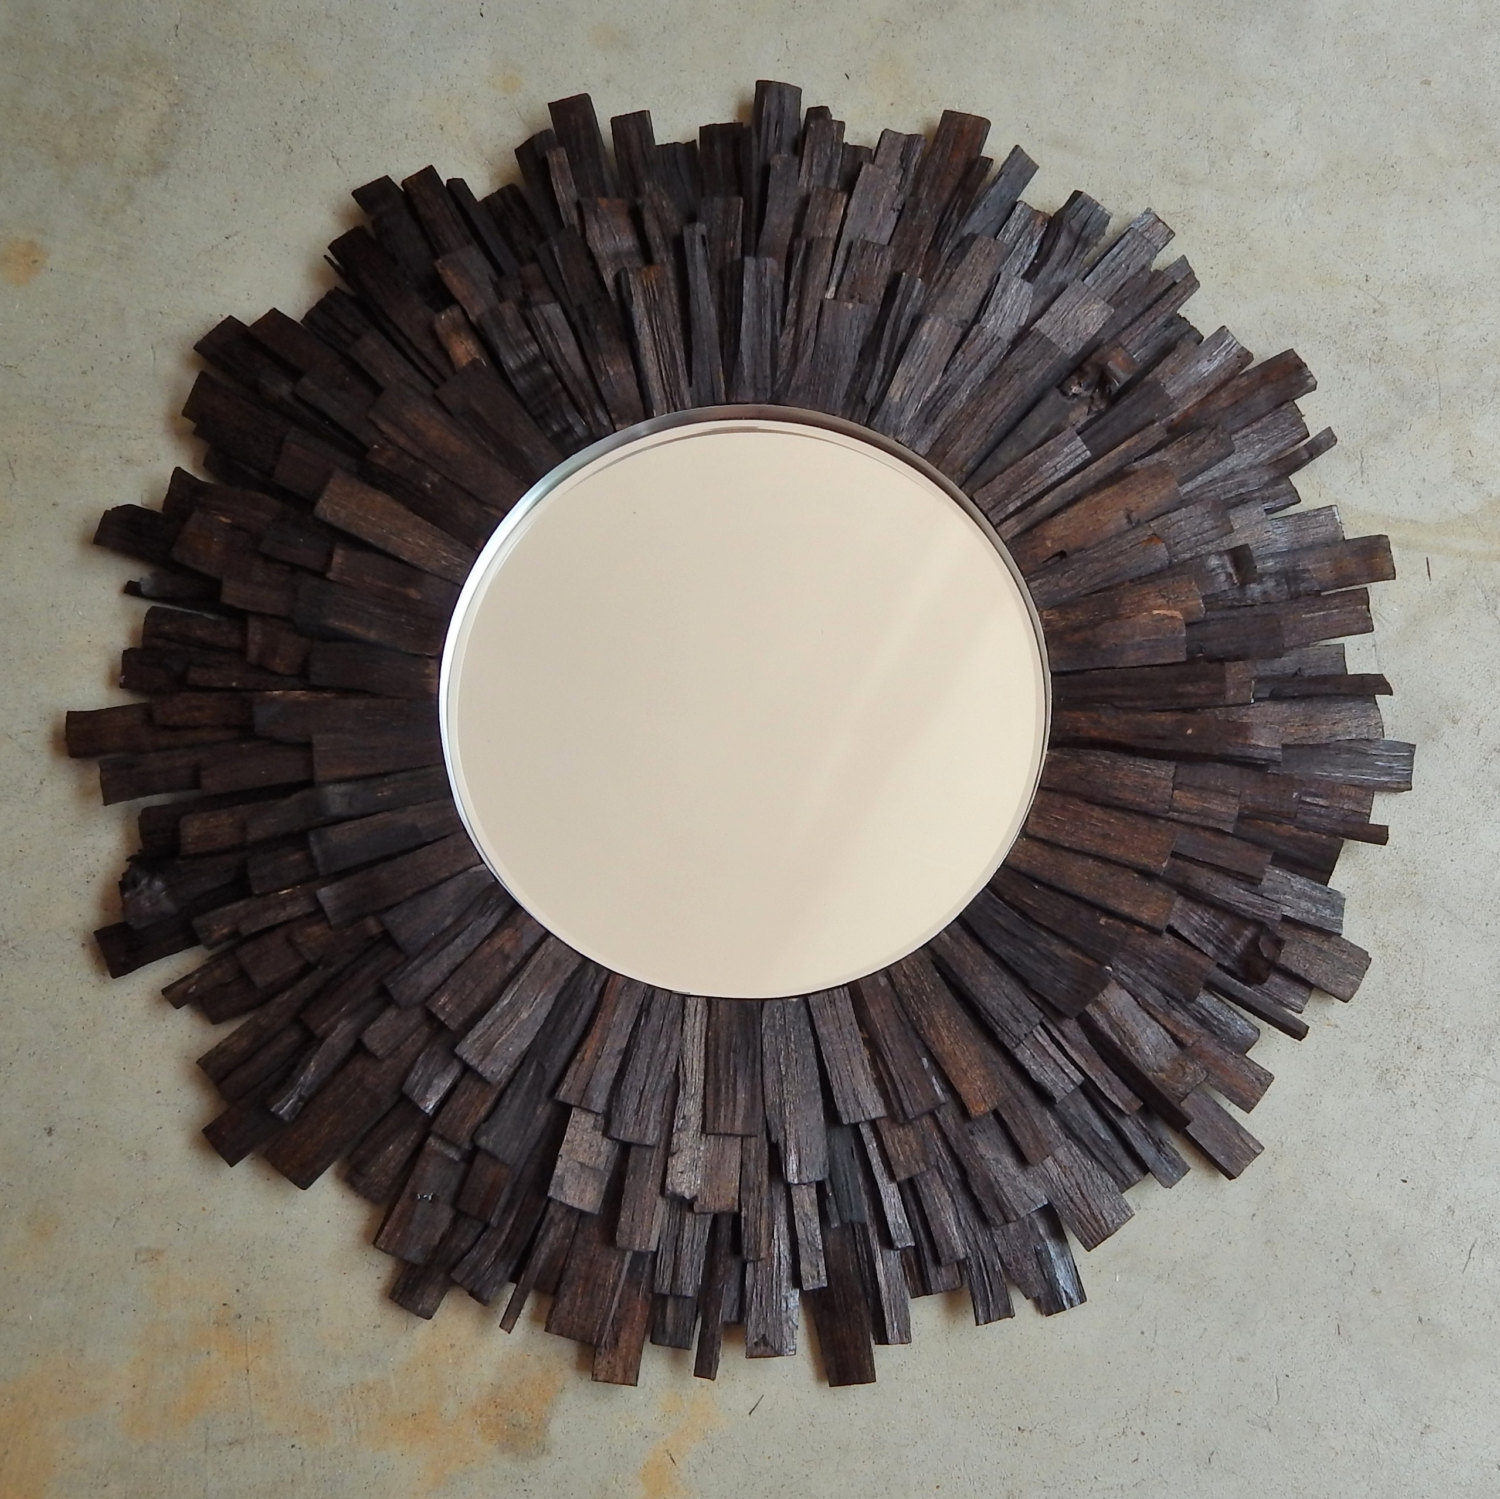 Sunburst Mirror Etsy Within Large Sunburst Mirrors For Sale (View 5 of 15)